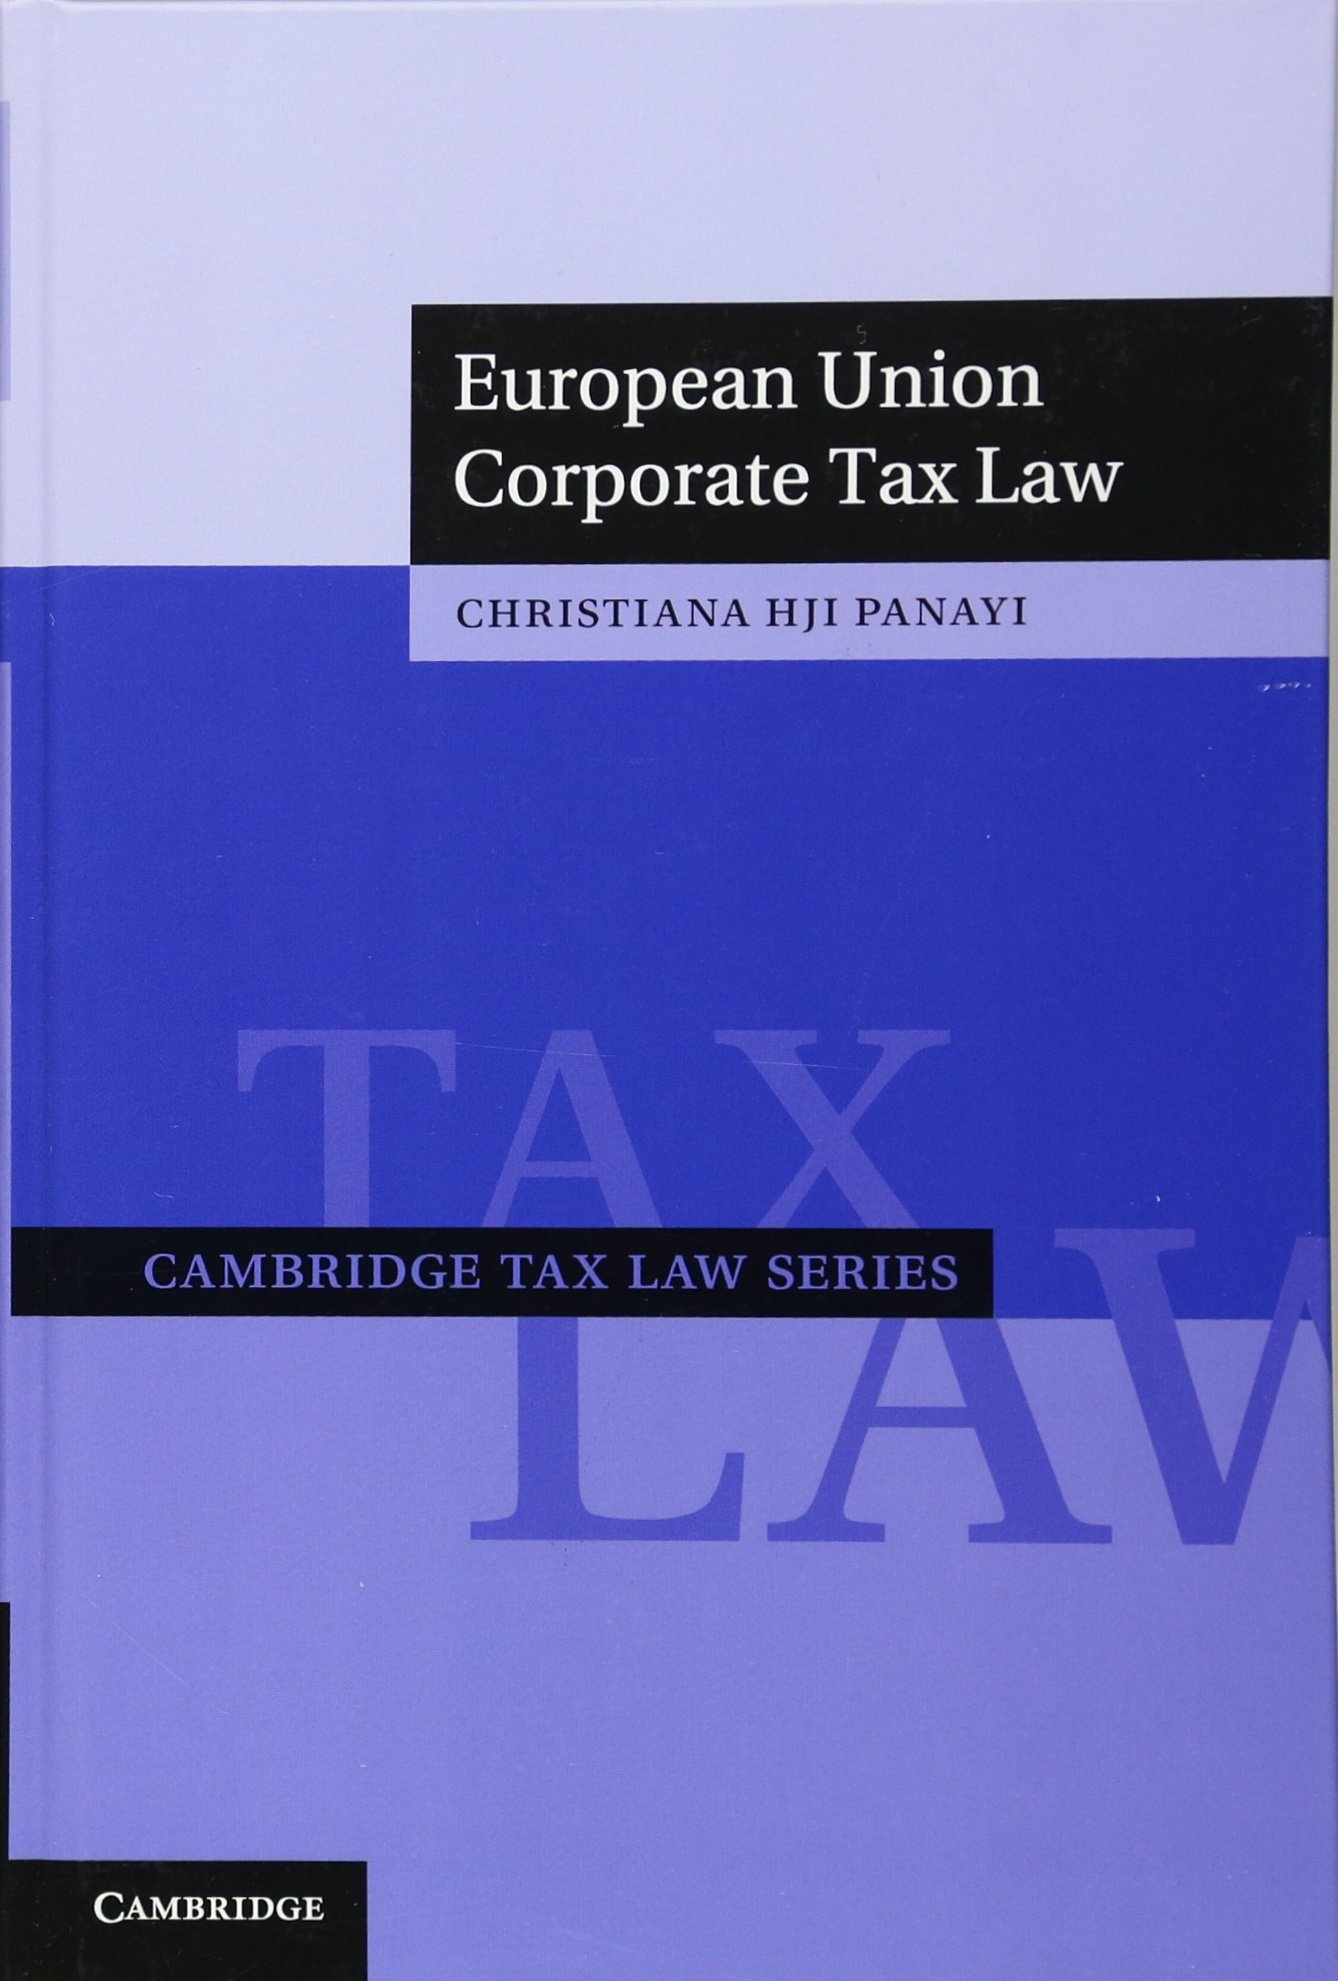 Download European Union Corporate Tax Law 